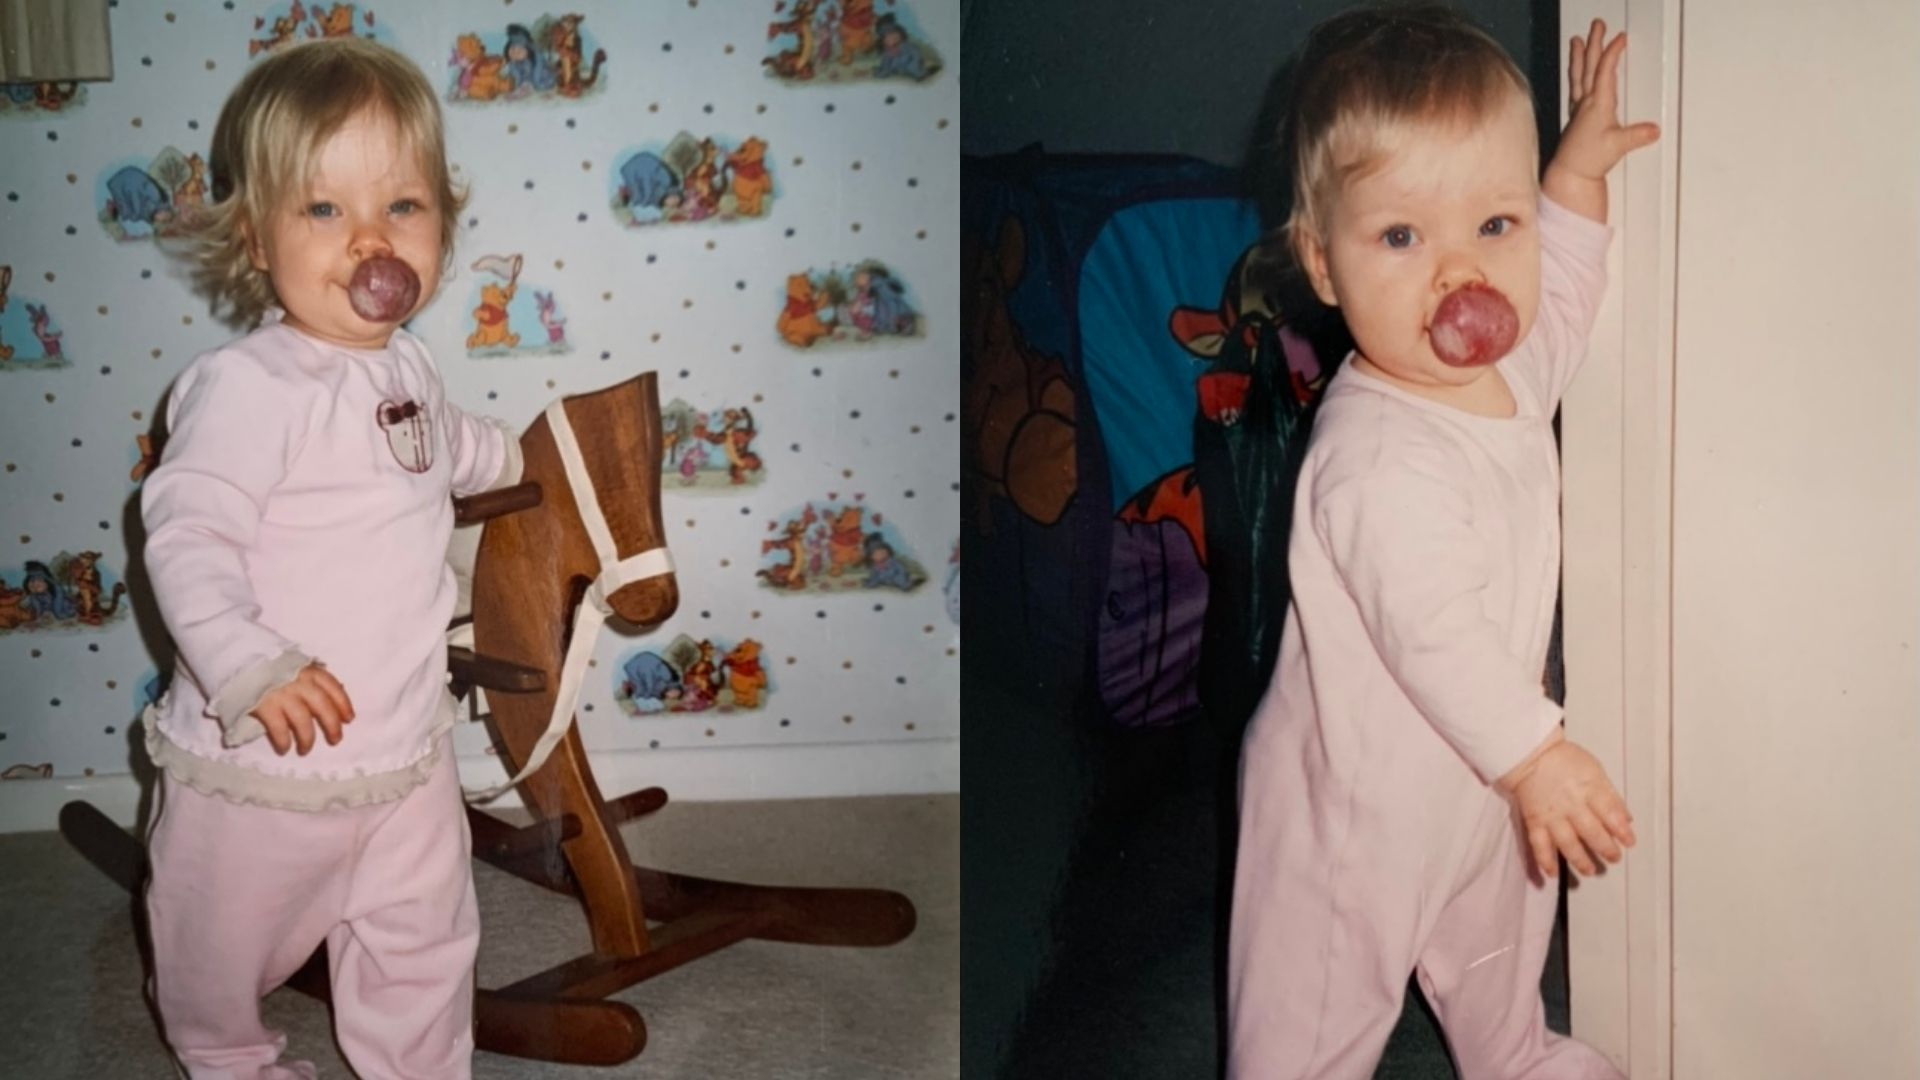 Left: Abbie as a toddler, 2-3 years old, with a hemangioma on her lip. She has short blonde hair and is wearing matching pink pyjamas. She's resting a hand on a rocking horse and looking at the camera. Right: Abbie as a toddler, 2-3 years old, with very short blonde hair and a hemangioma on her lip. She is wearing a pink onesie and leaning against a doorway and looking at the camera.